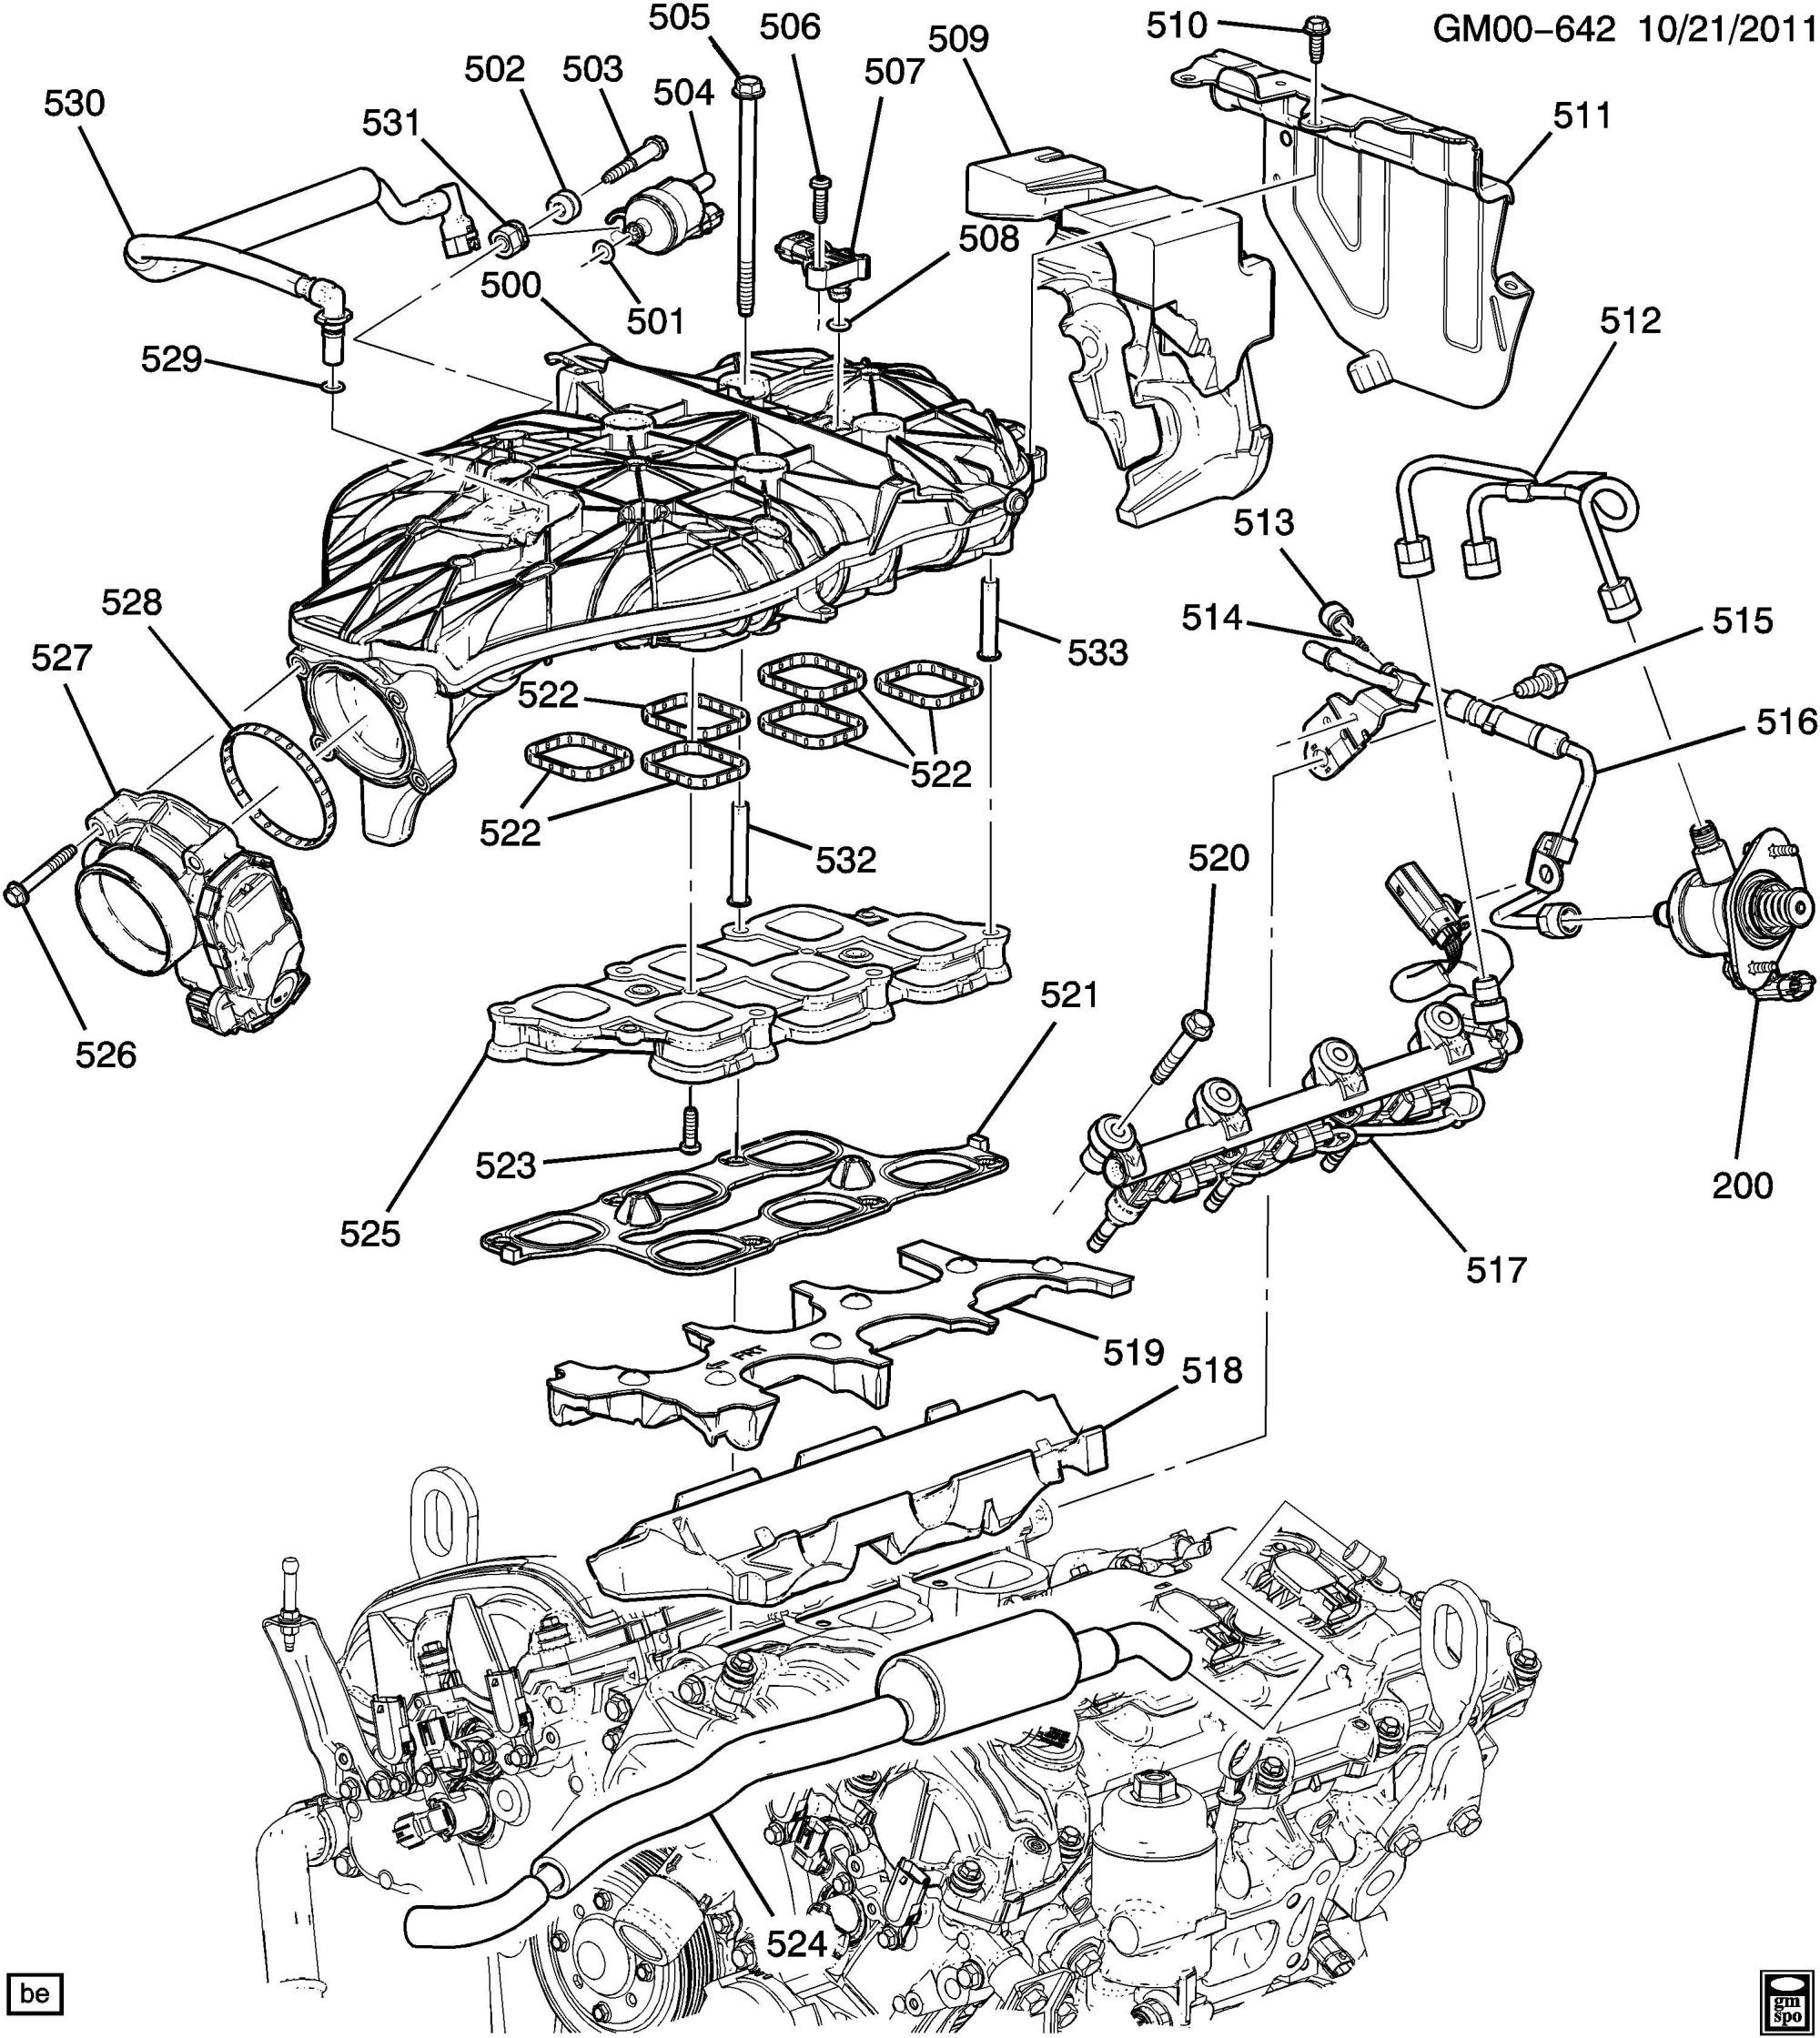 hight resolution of camaro v6 engine diagram wiring diagram inside 2010 camaro engine diagram